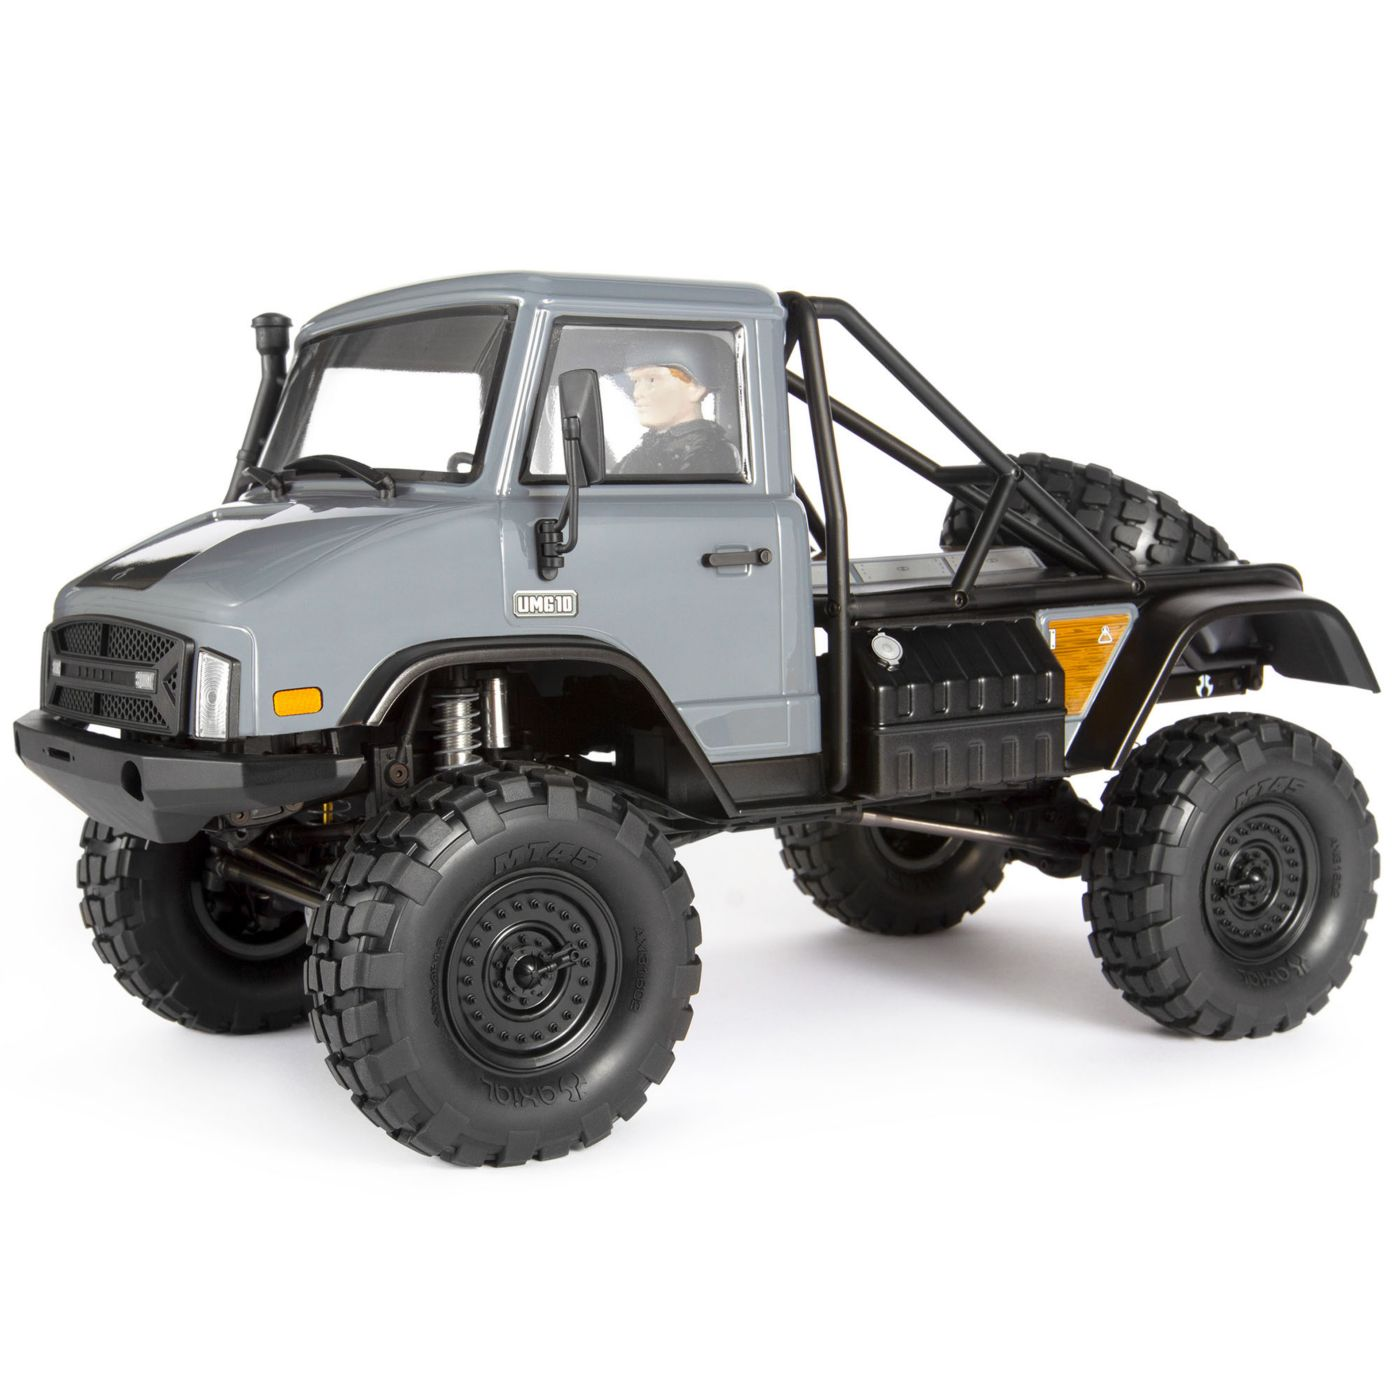 Axial Racing 1/10 SCX10 II UMG10 4WD Rock Crawler Kit